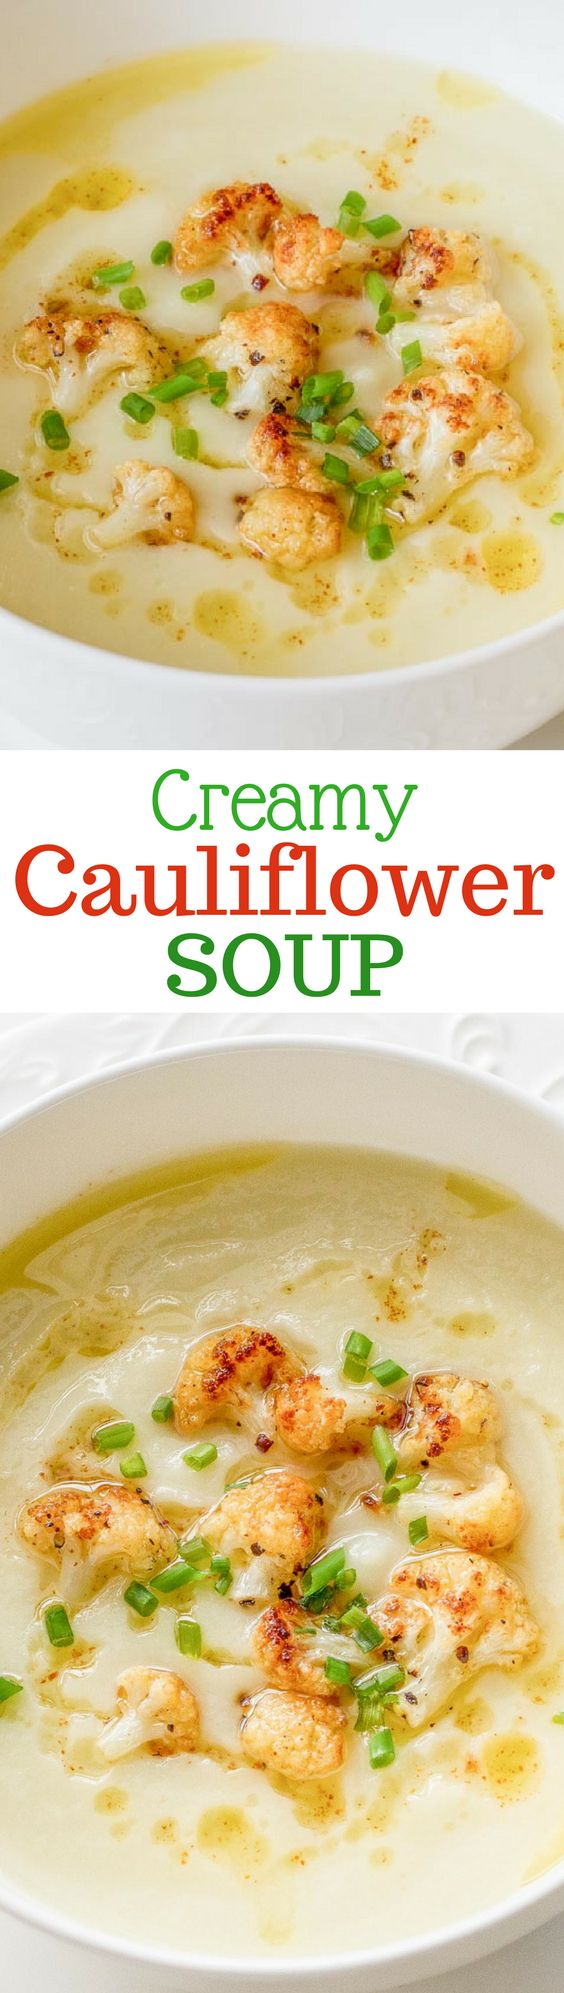 Creamy Cauliflower Soup ~ this soup is anything but boring! Deliciously fresh, healthy, creamy and satisfying ~ from www.savingdessert.com #savingroomfordessert #soup #cauliflower #healthysoup #comfortfood #vegetarian